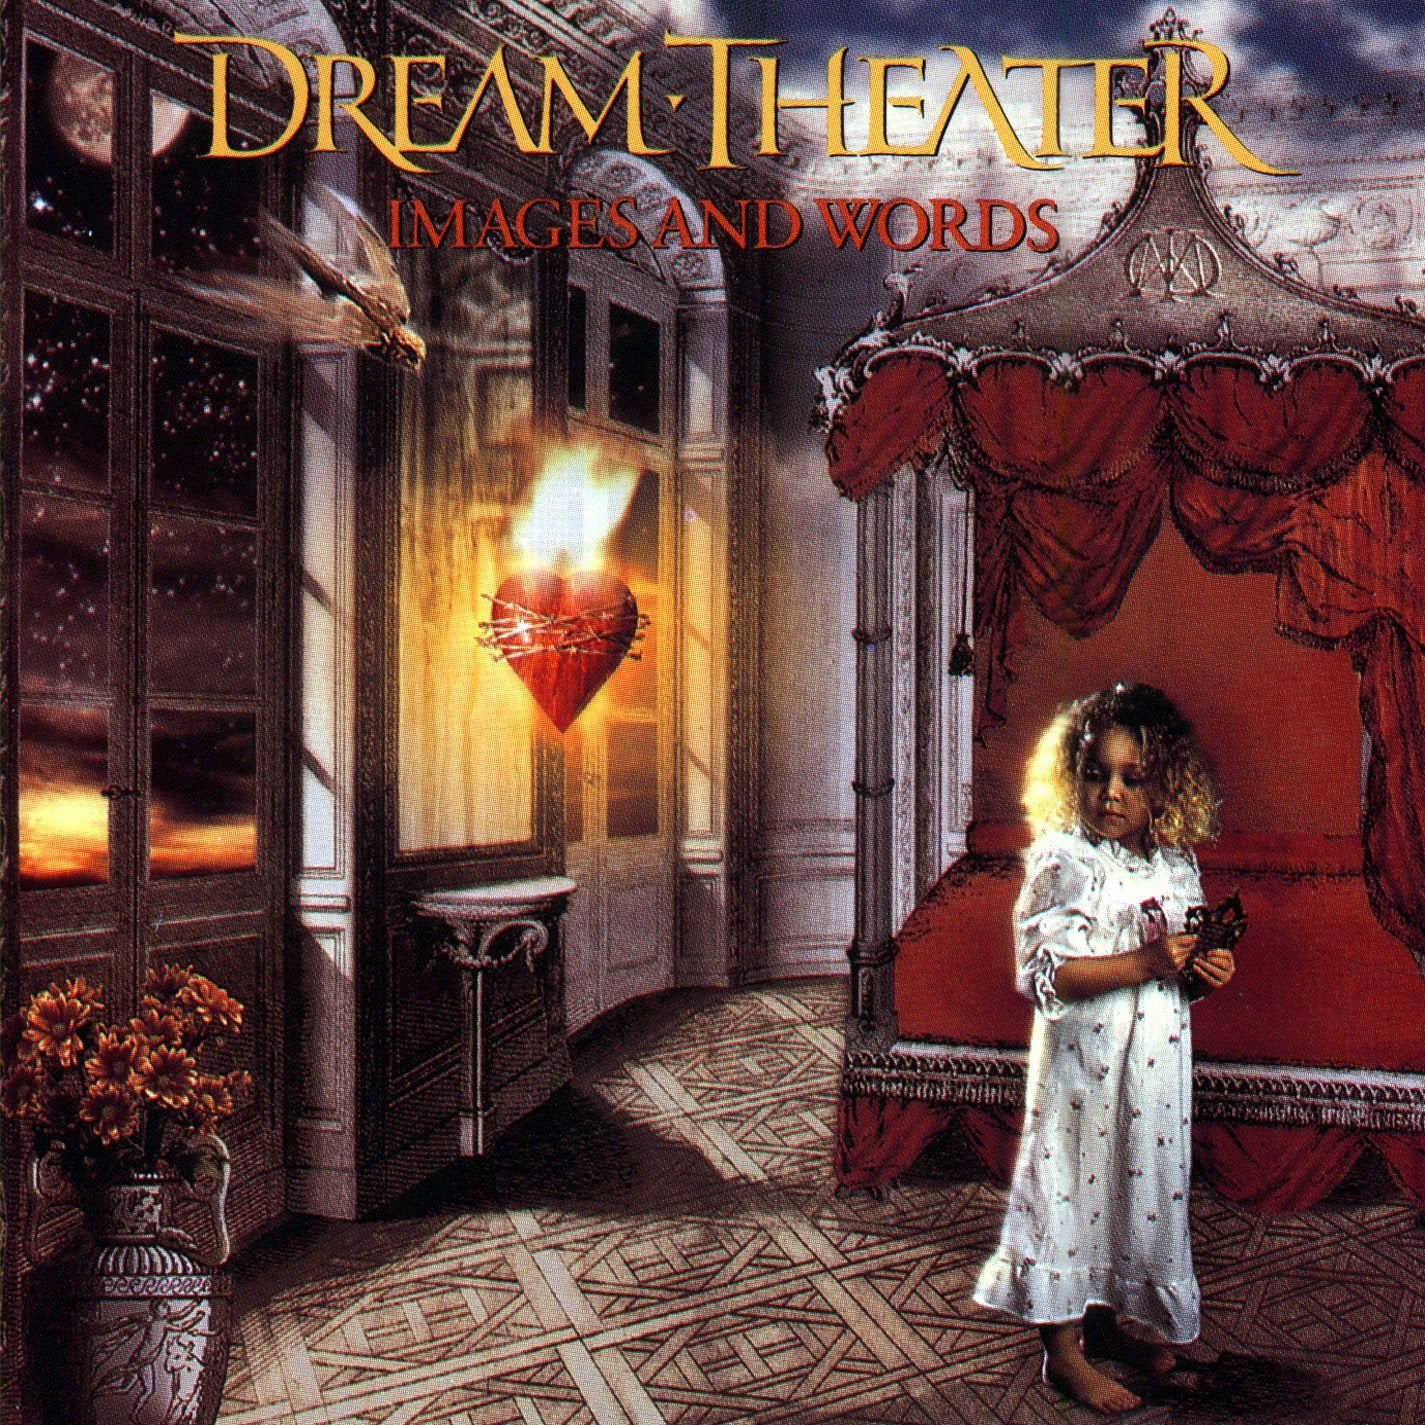 Dream Theater - Images And Words - Gears For Ears